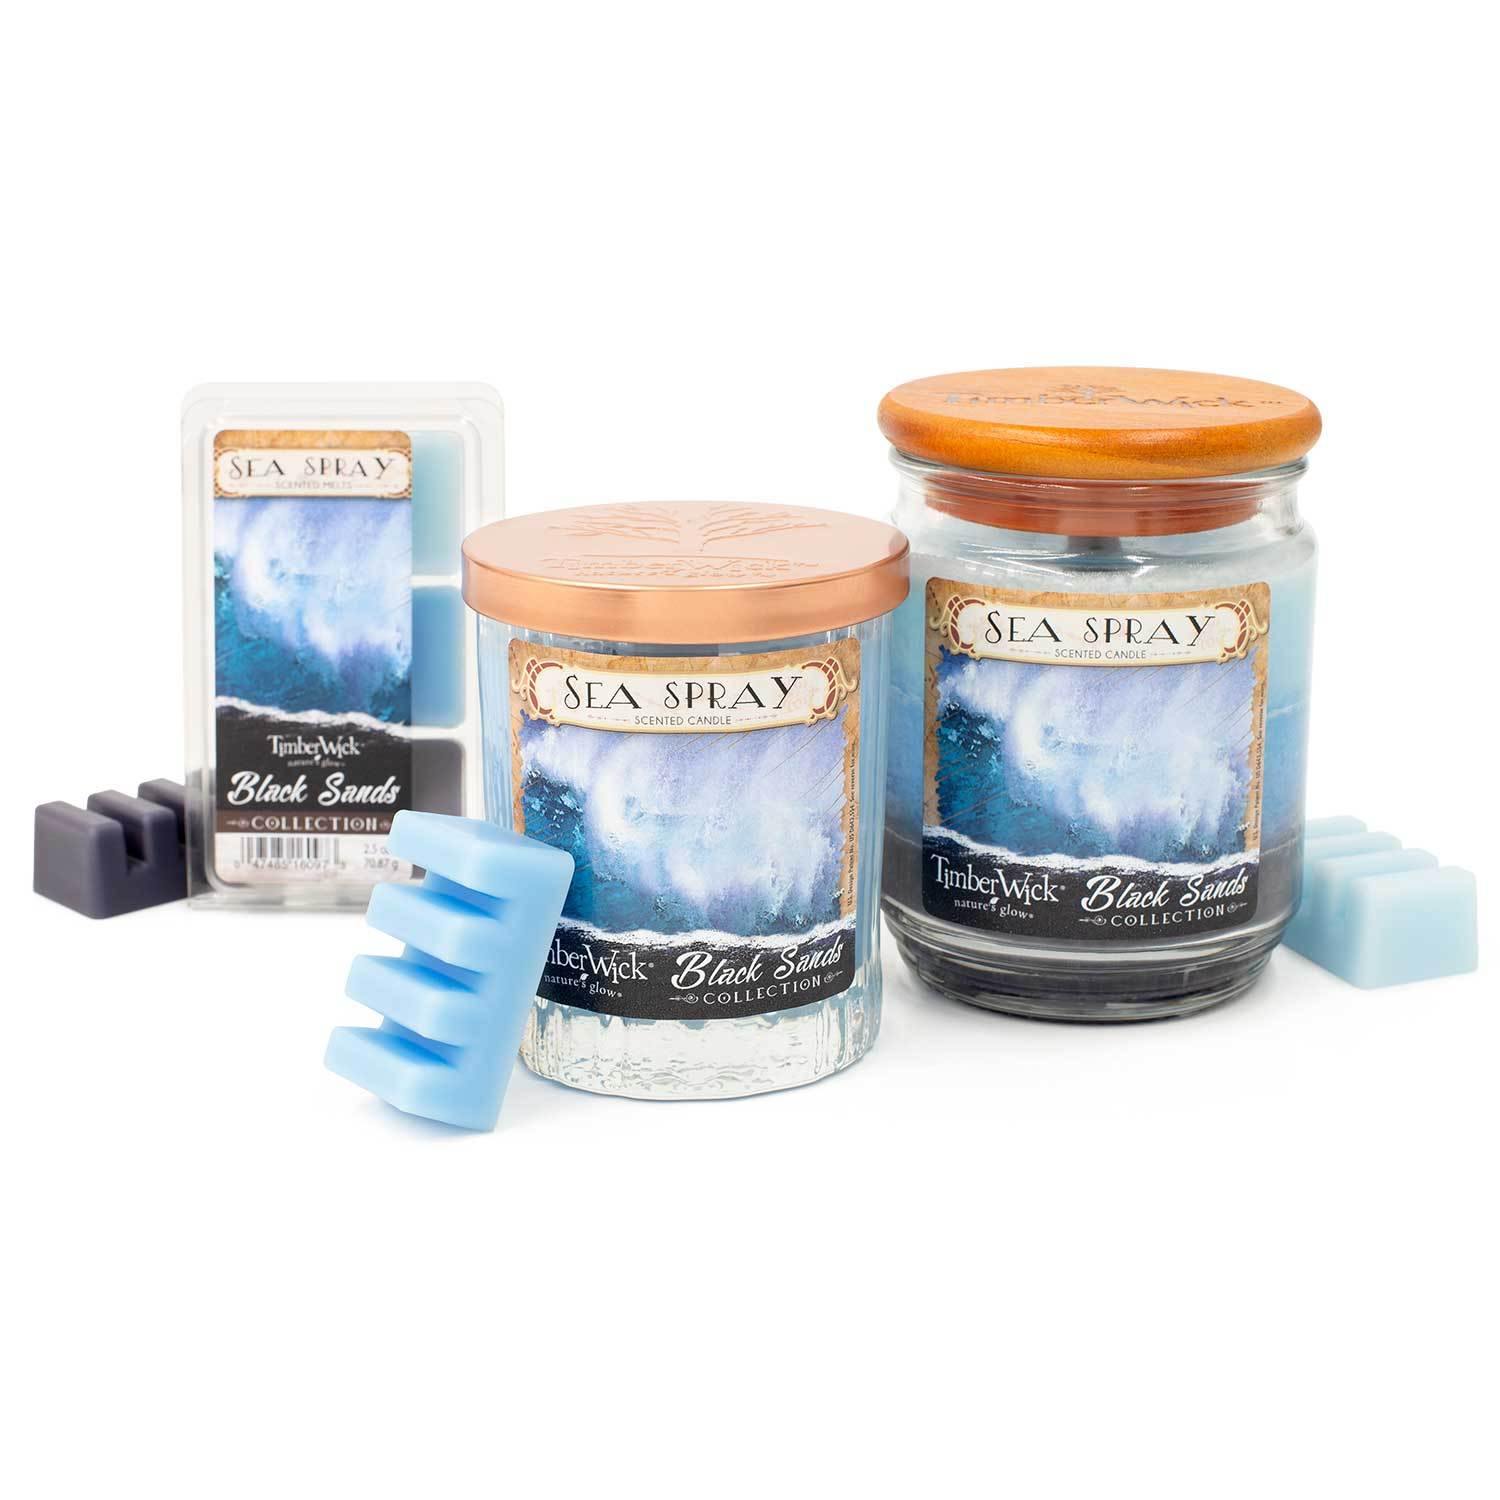 Timberwick Sea Spray Scented Candle